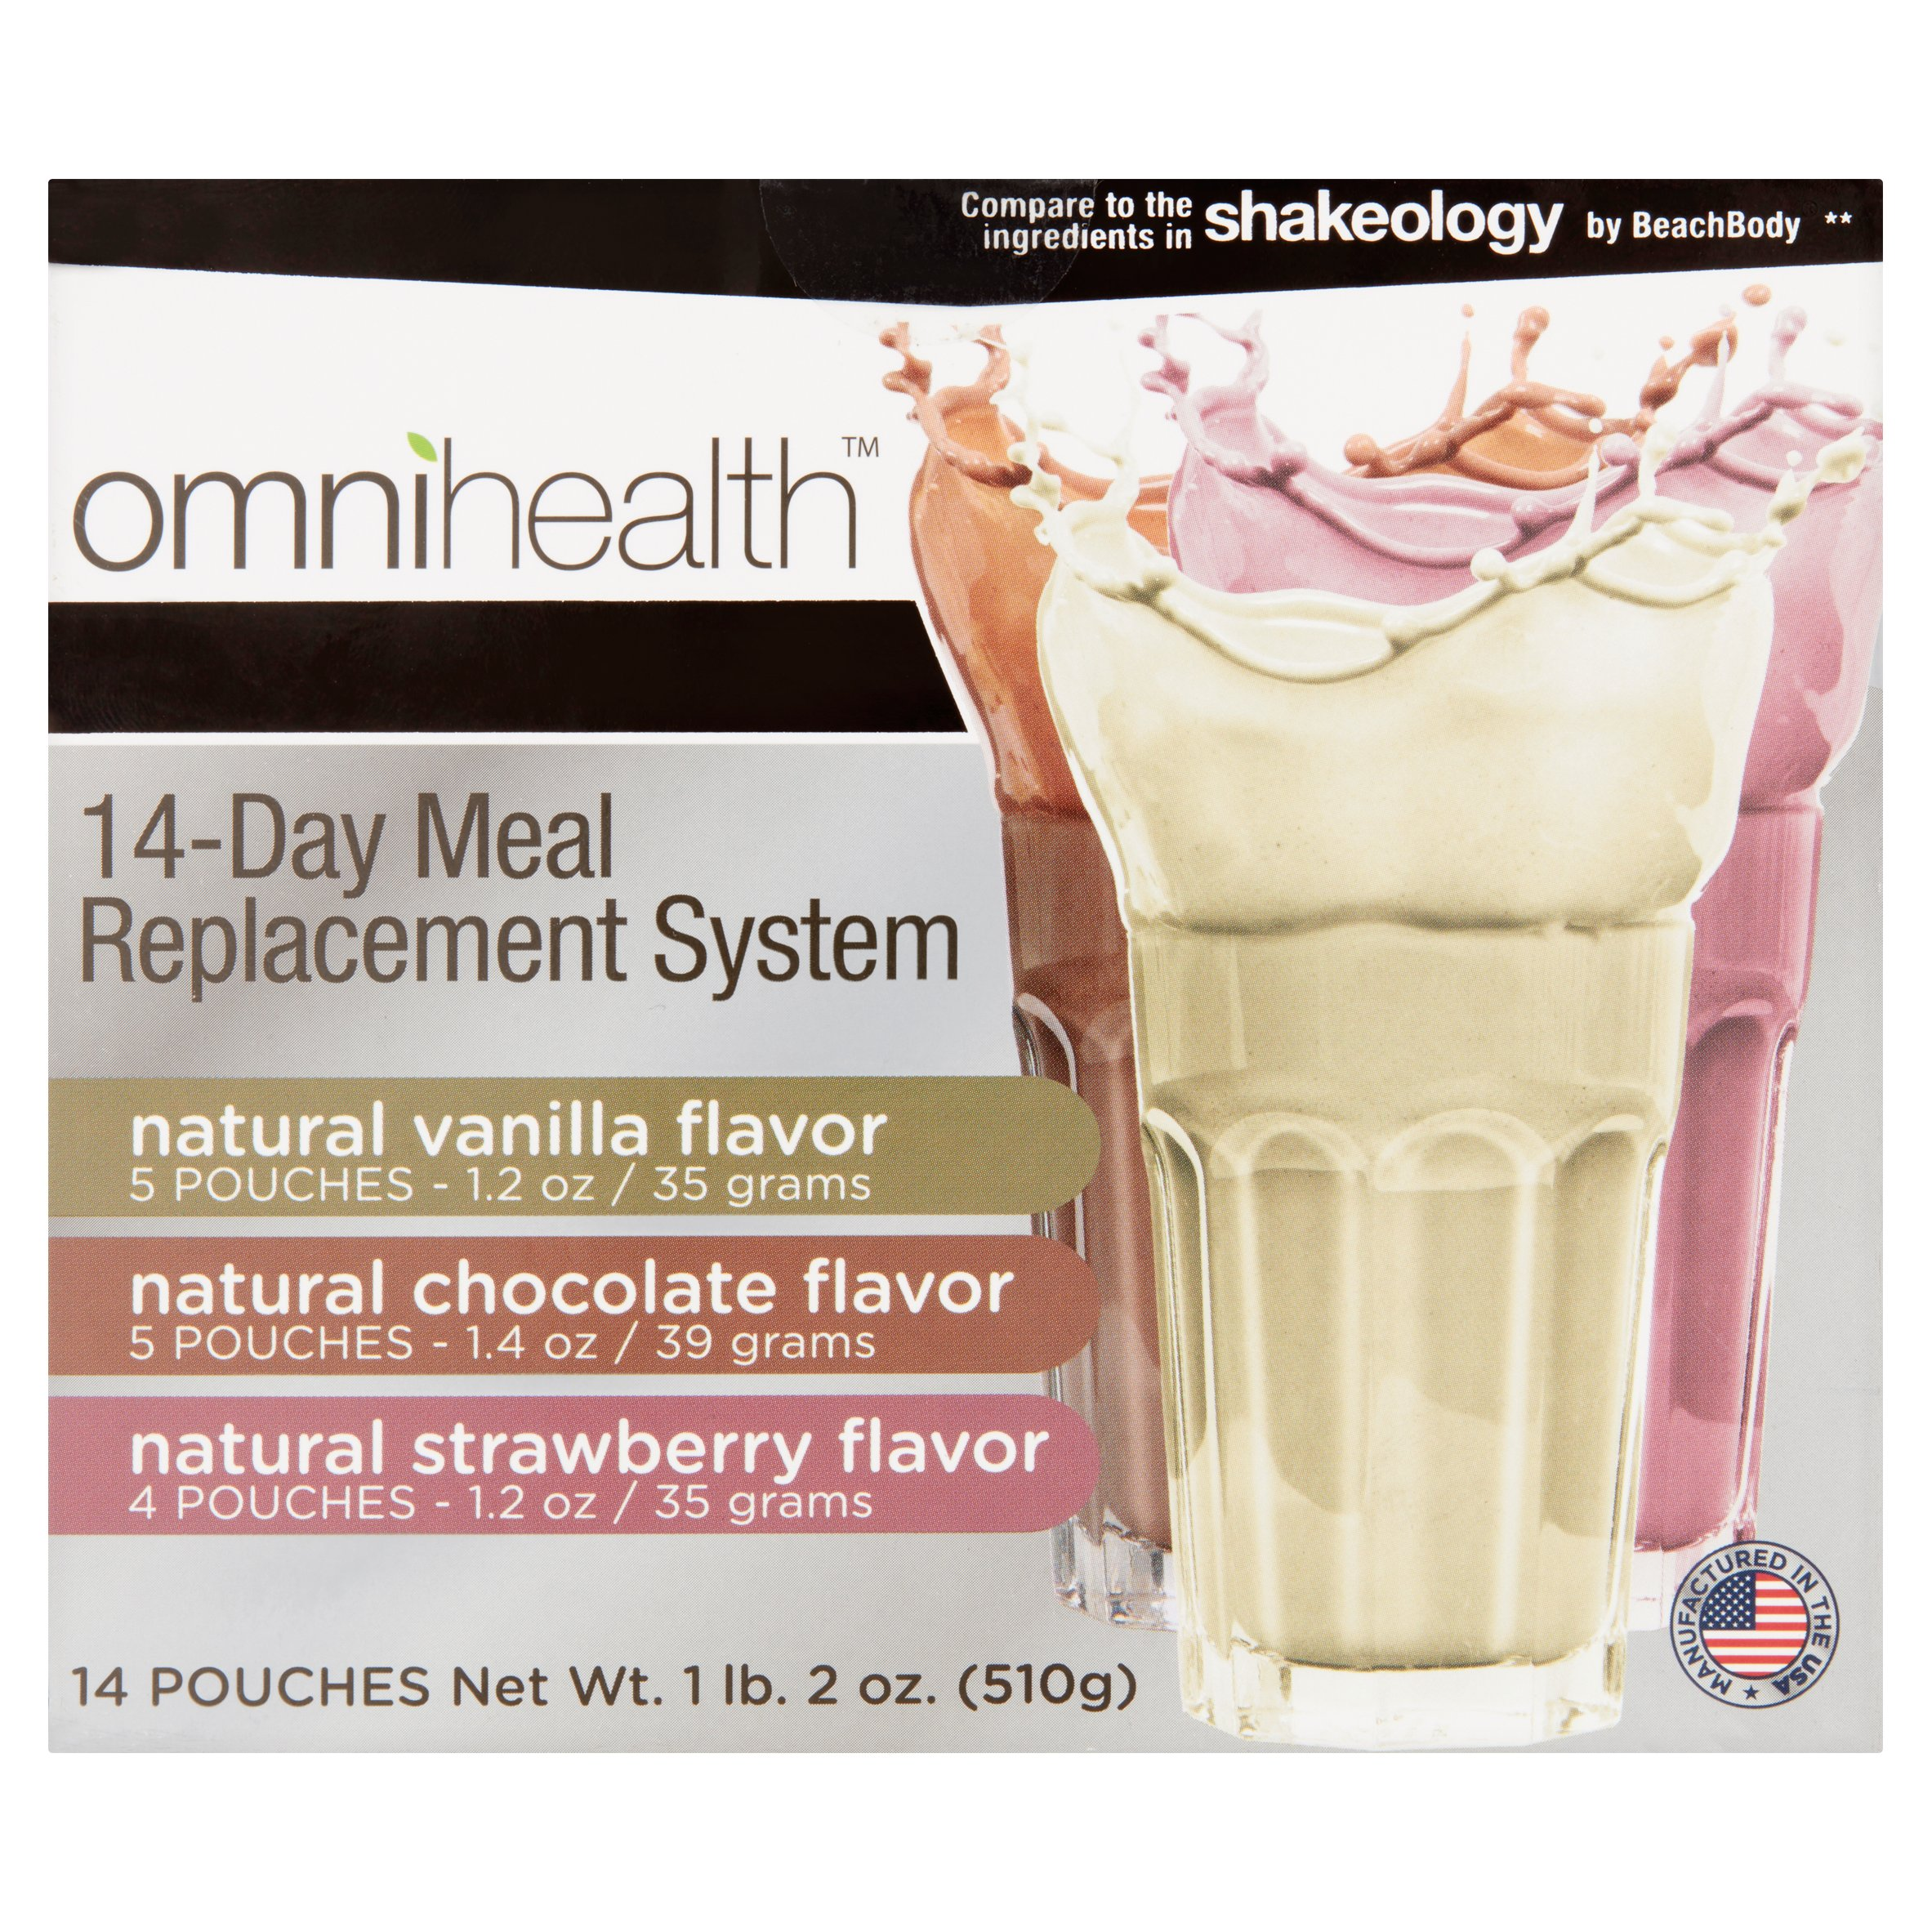 Omnihealth 14 Day Meal Replacement System, 14 count, 1 lb 2 oz